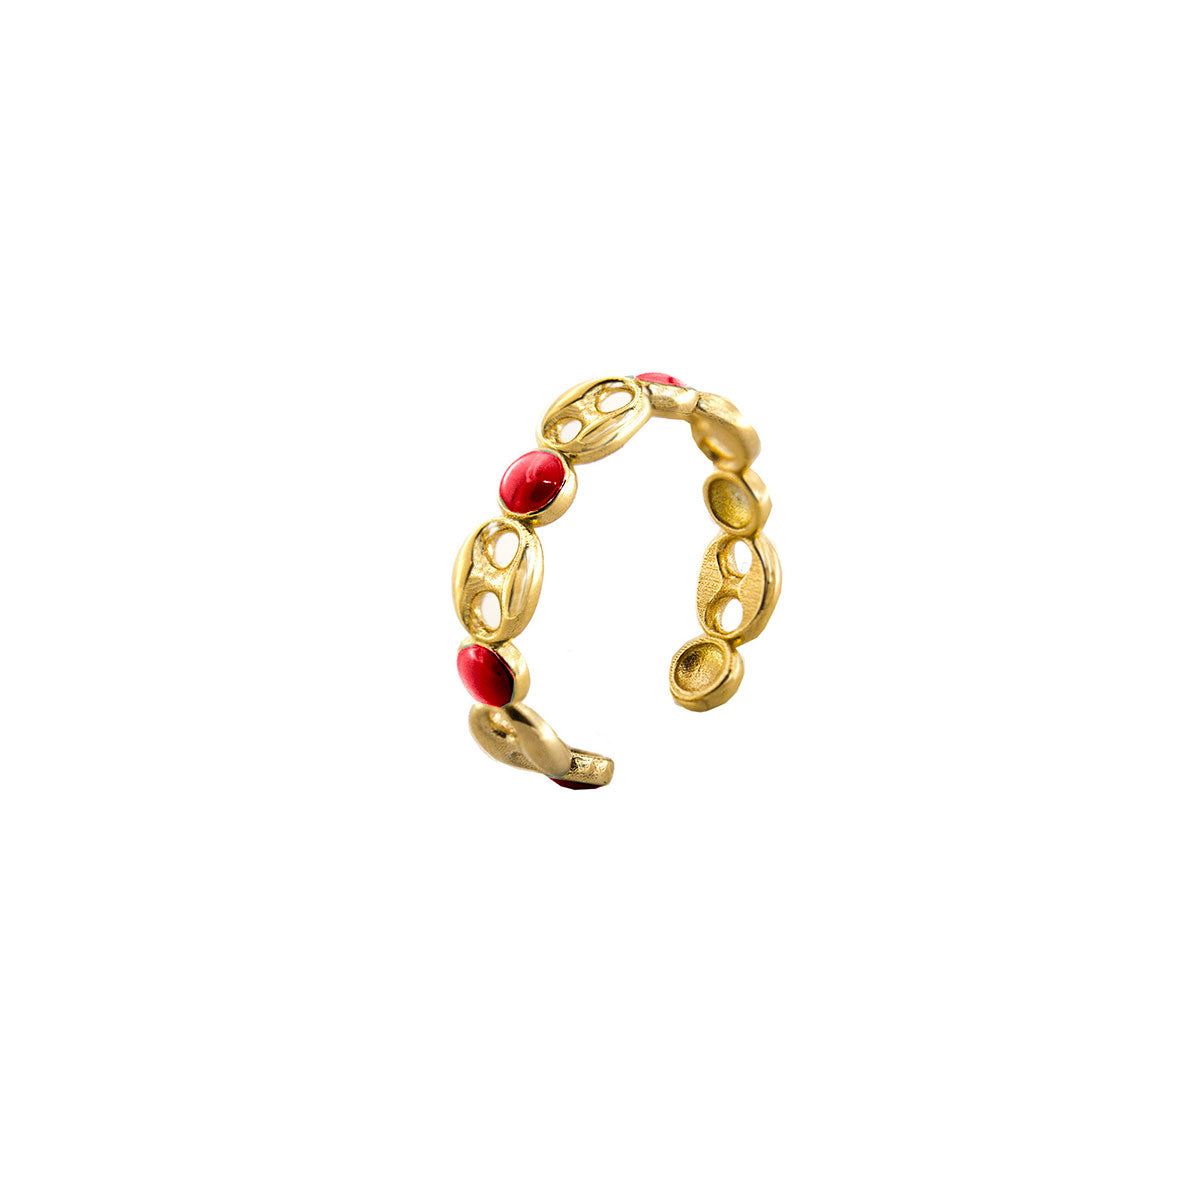 Rings - Ring - Enameled Cabochon Coral Dots and Marine Link - 1 | Rue des Mille